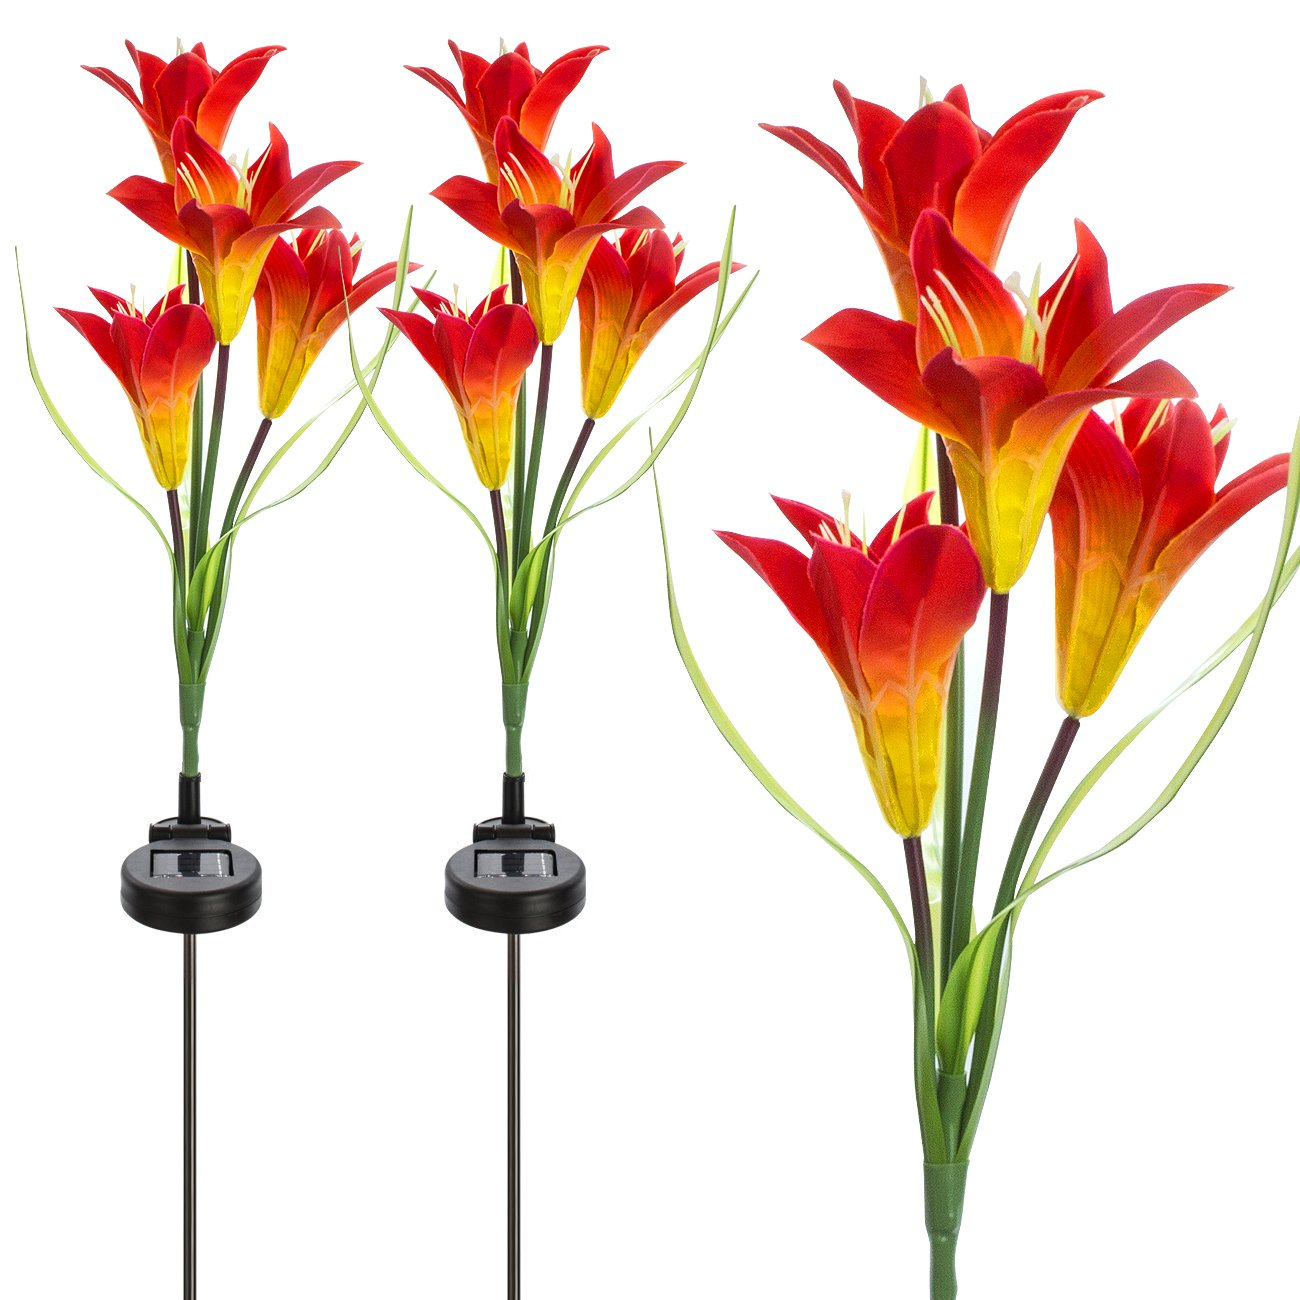 Sorbus Solar Light Flower Lily Stakes, Outdoor LED Garden Flowers for Night Lighting, Solar Path Walkway, Lawn, Garden, Pond, Patio, Gravestones, Special Occasions, etc (Orange)